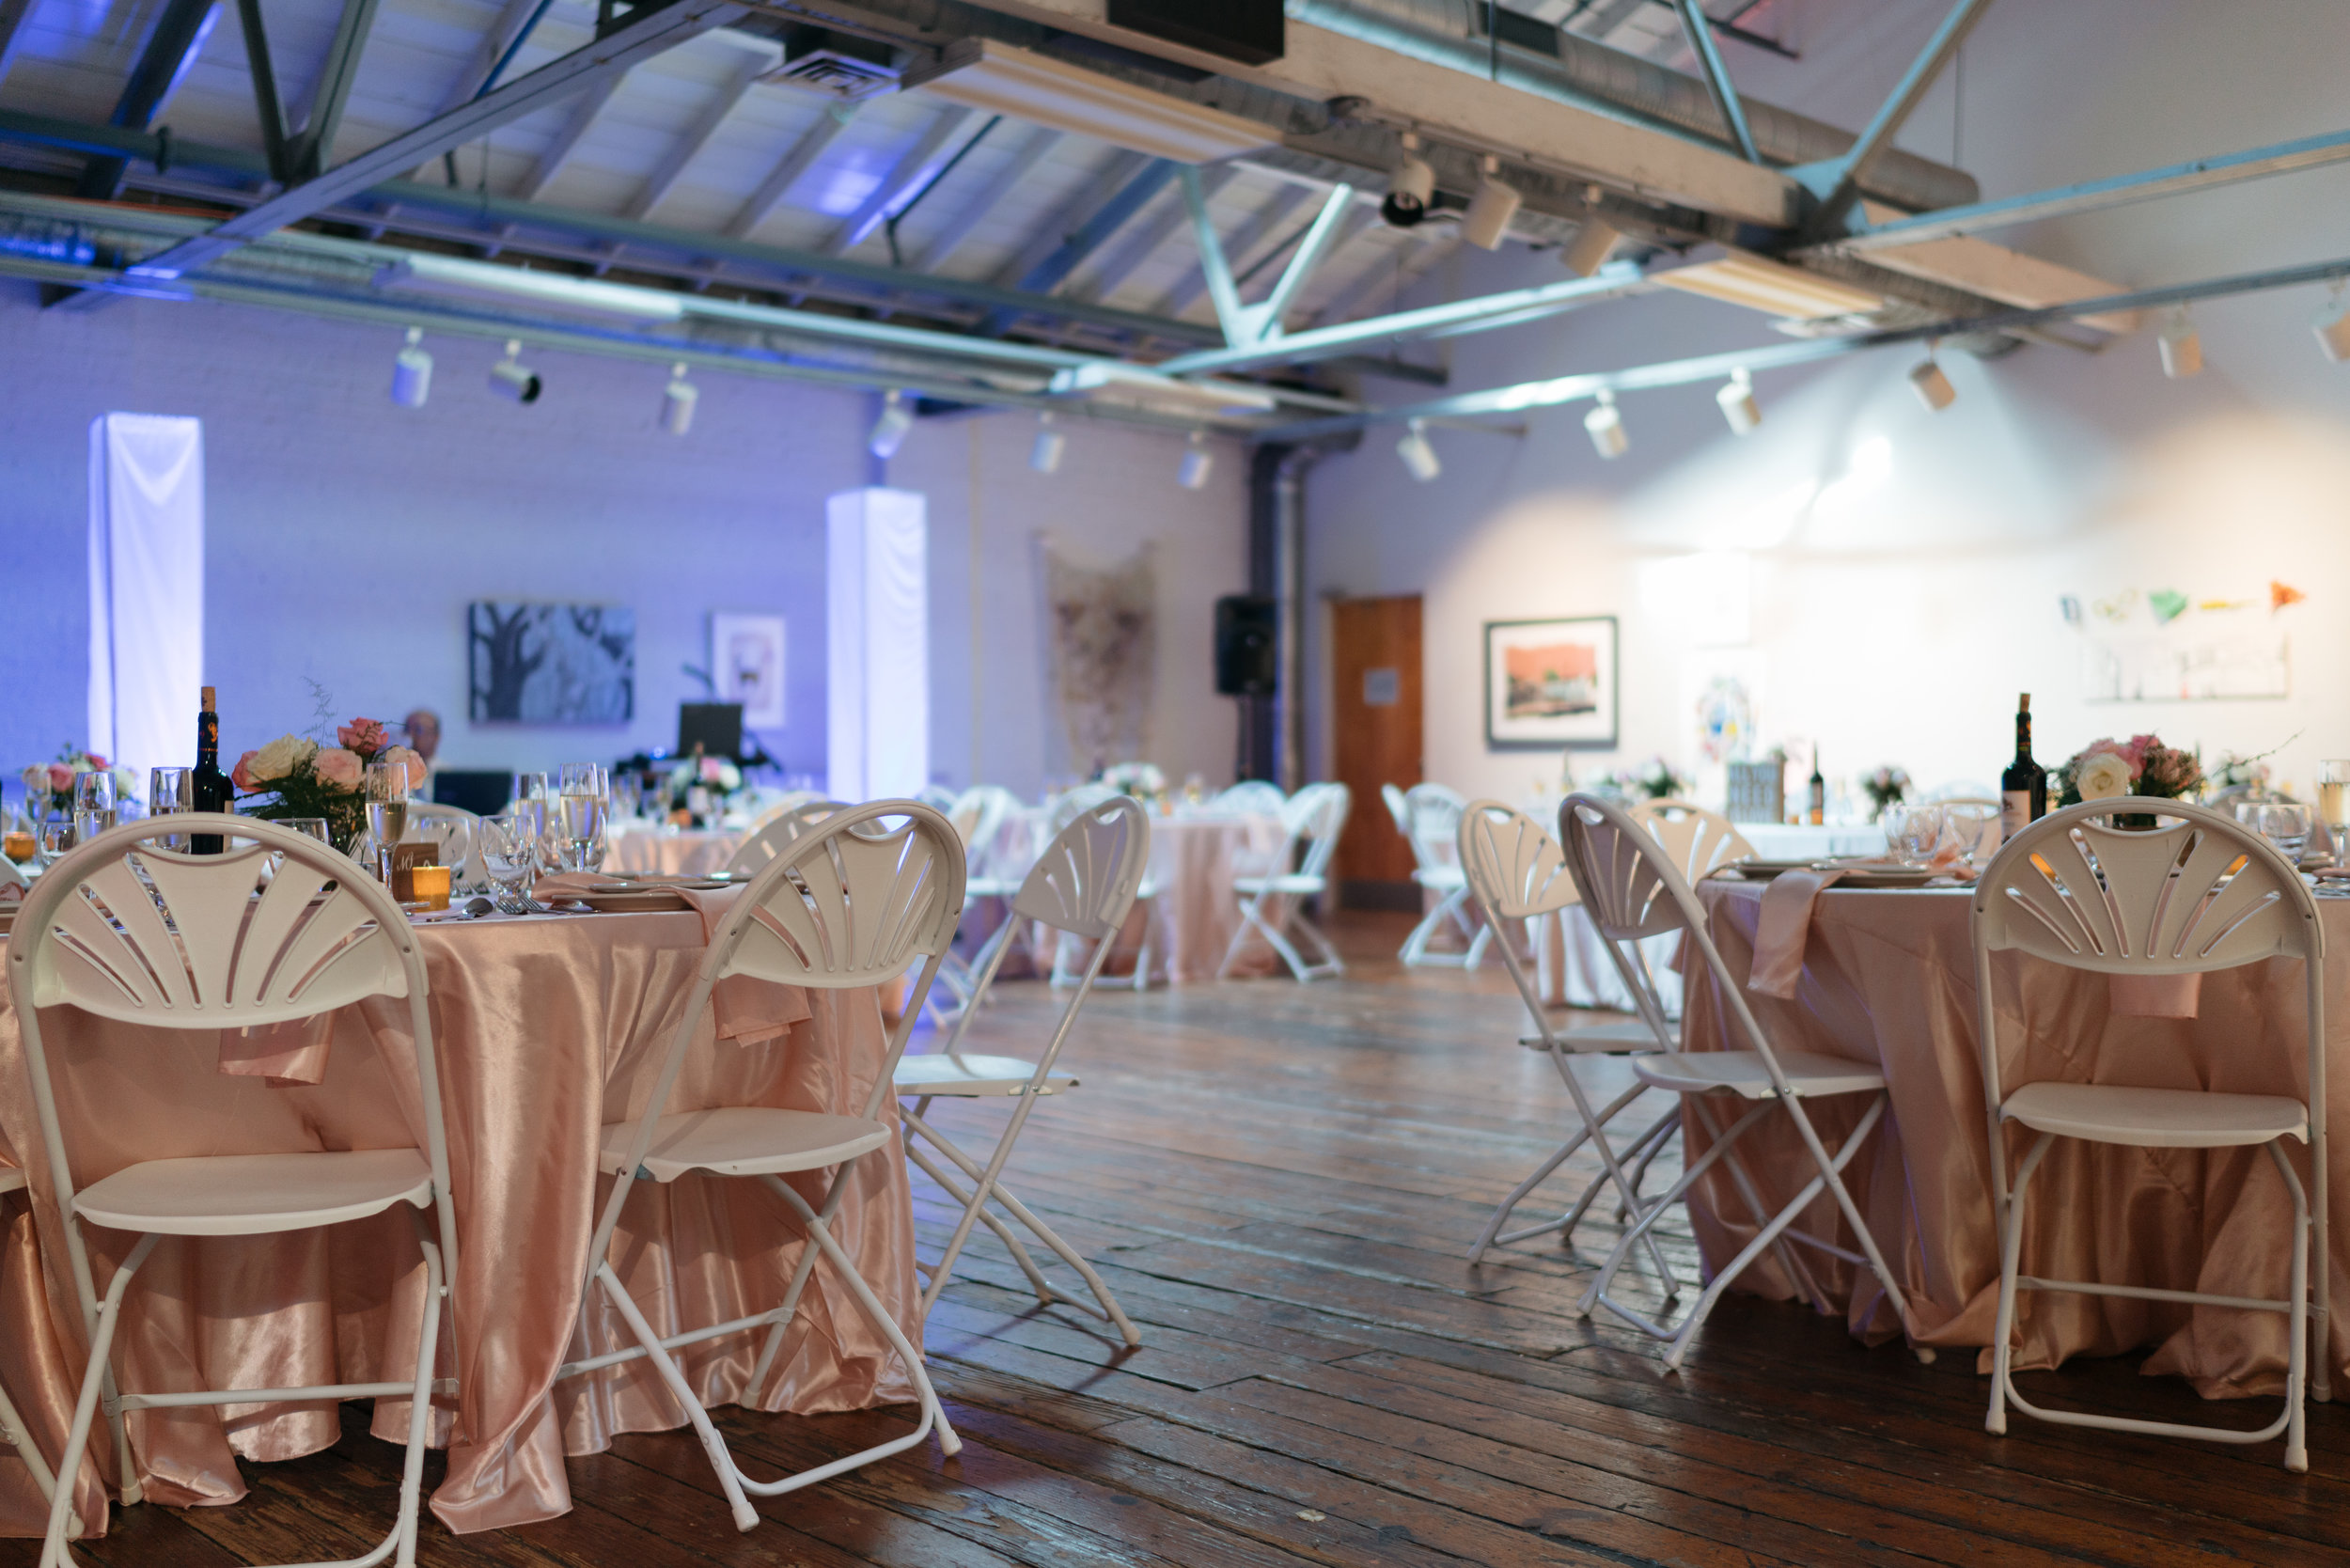 We ended up asking for rentals from our catering company as they were the least expensive option we could find: we asked for additional tables (since the venue offered us several which saved us money, chairs, linens for the tables- table cloth and napkins, silverware, cups and wine glasses. I originally envisioned  a different colored napkin on the tables and Bryan and I ended up really liking the blush on blush setting.